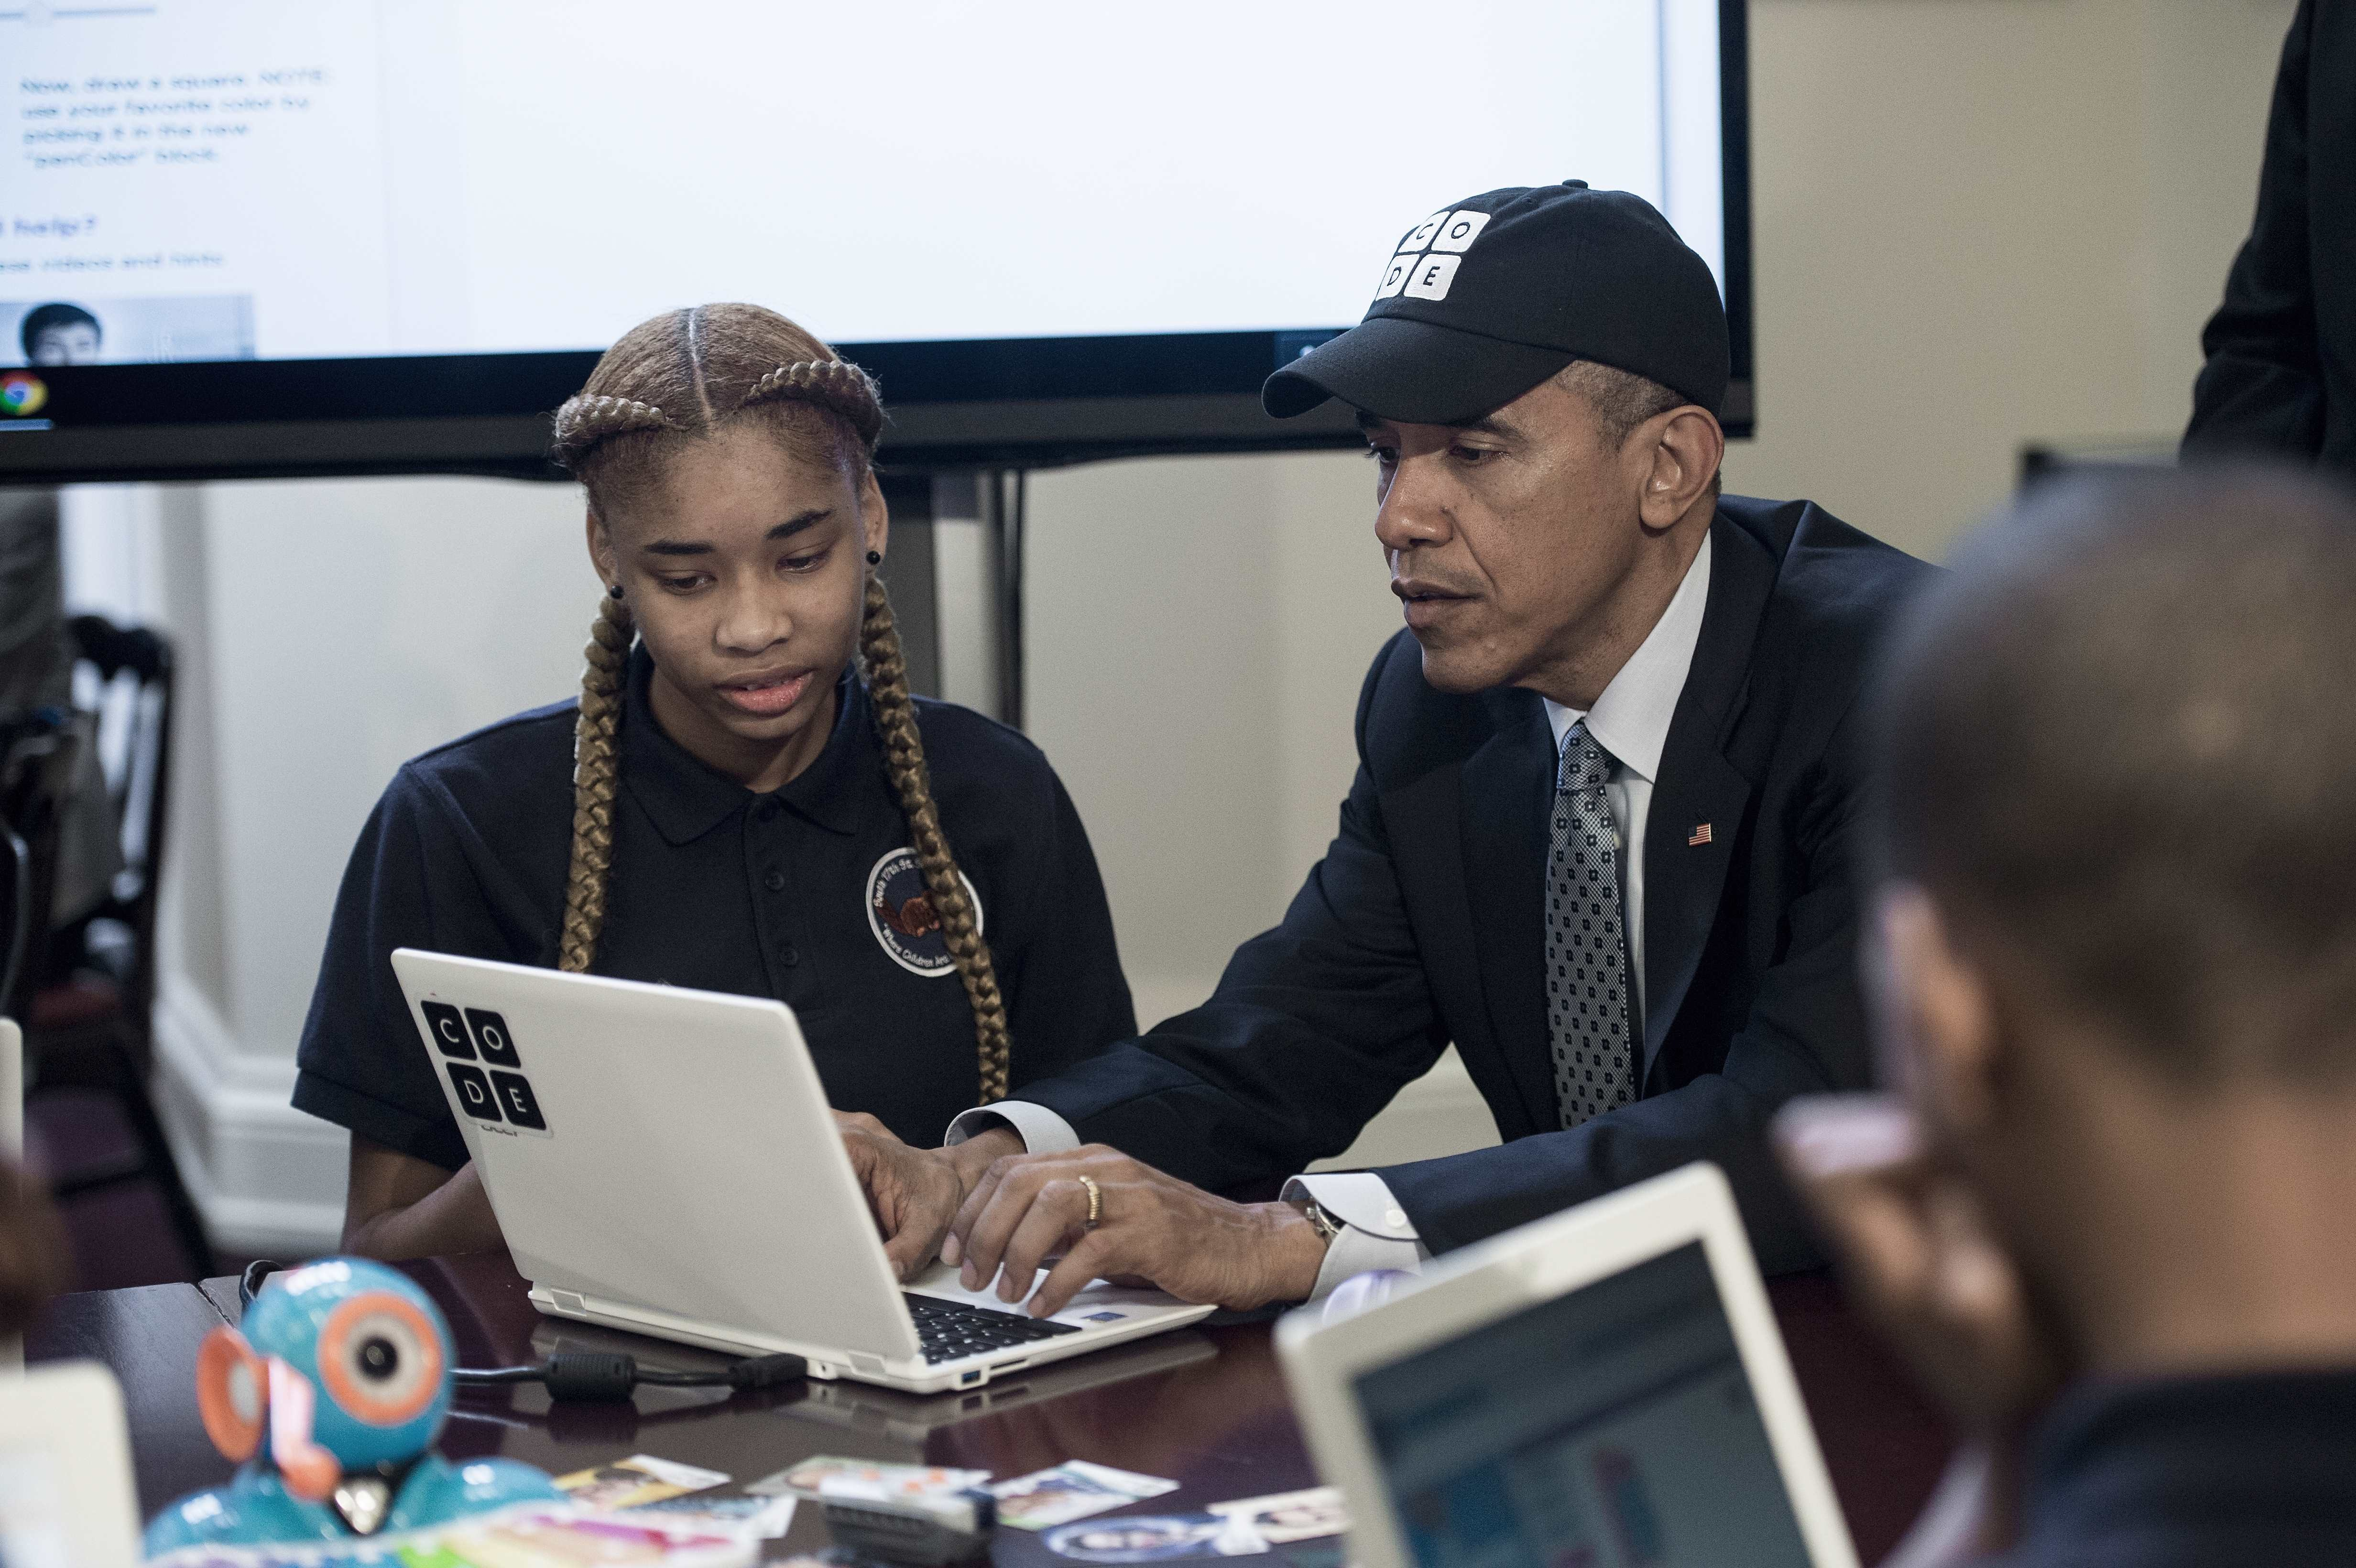 US President Barack Obama works with a middle-school student on December 8, 2014.